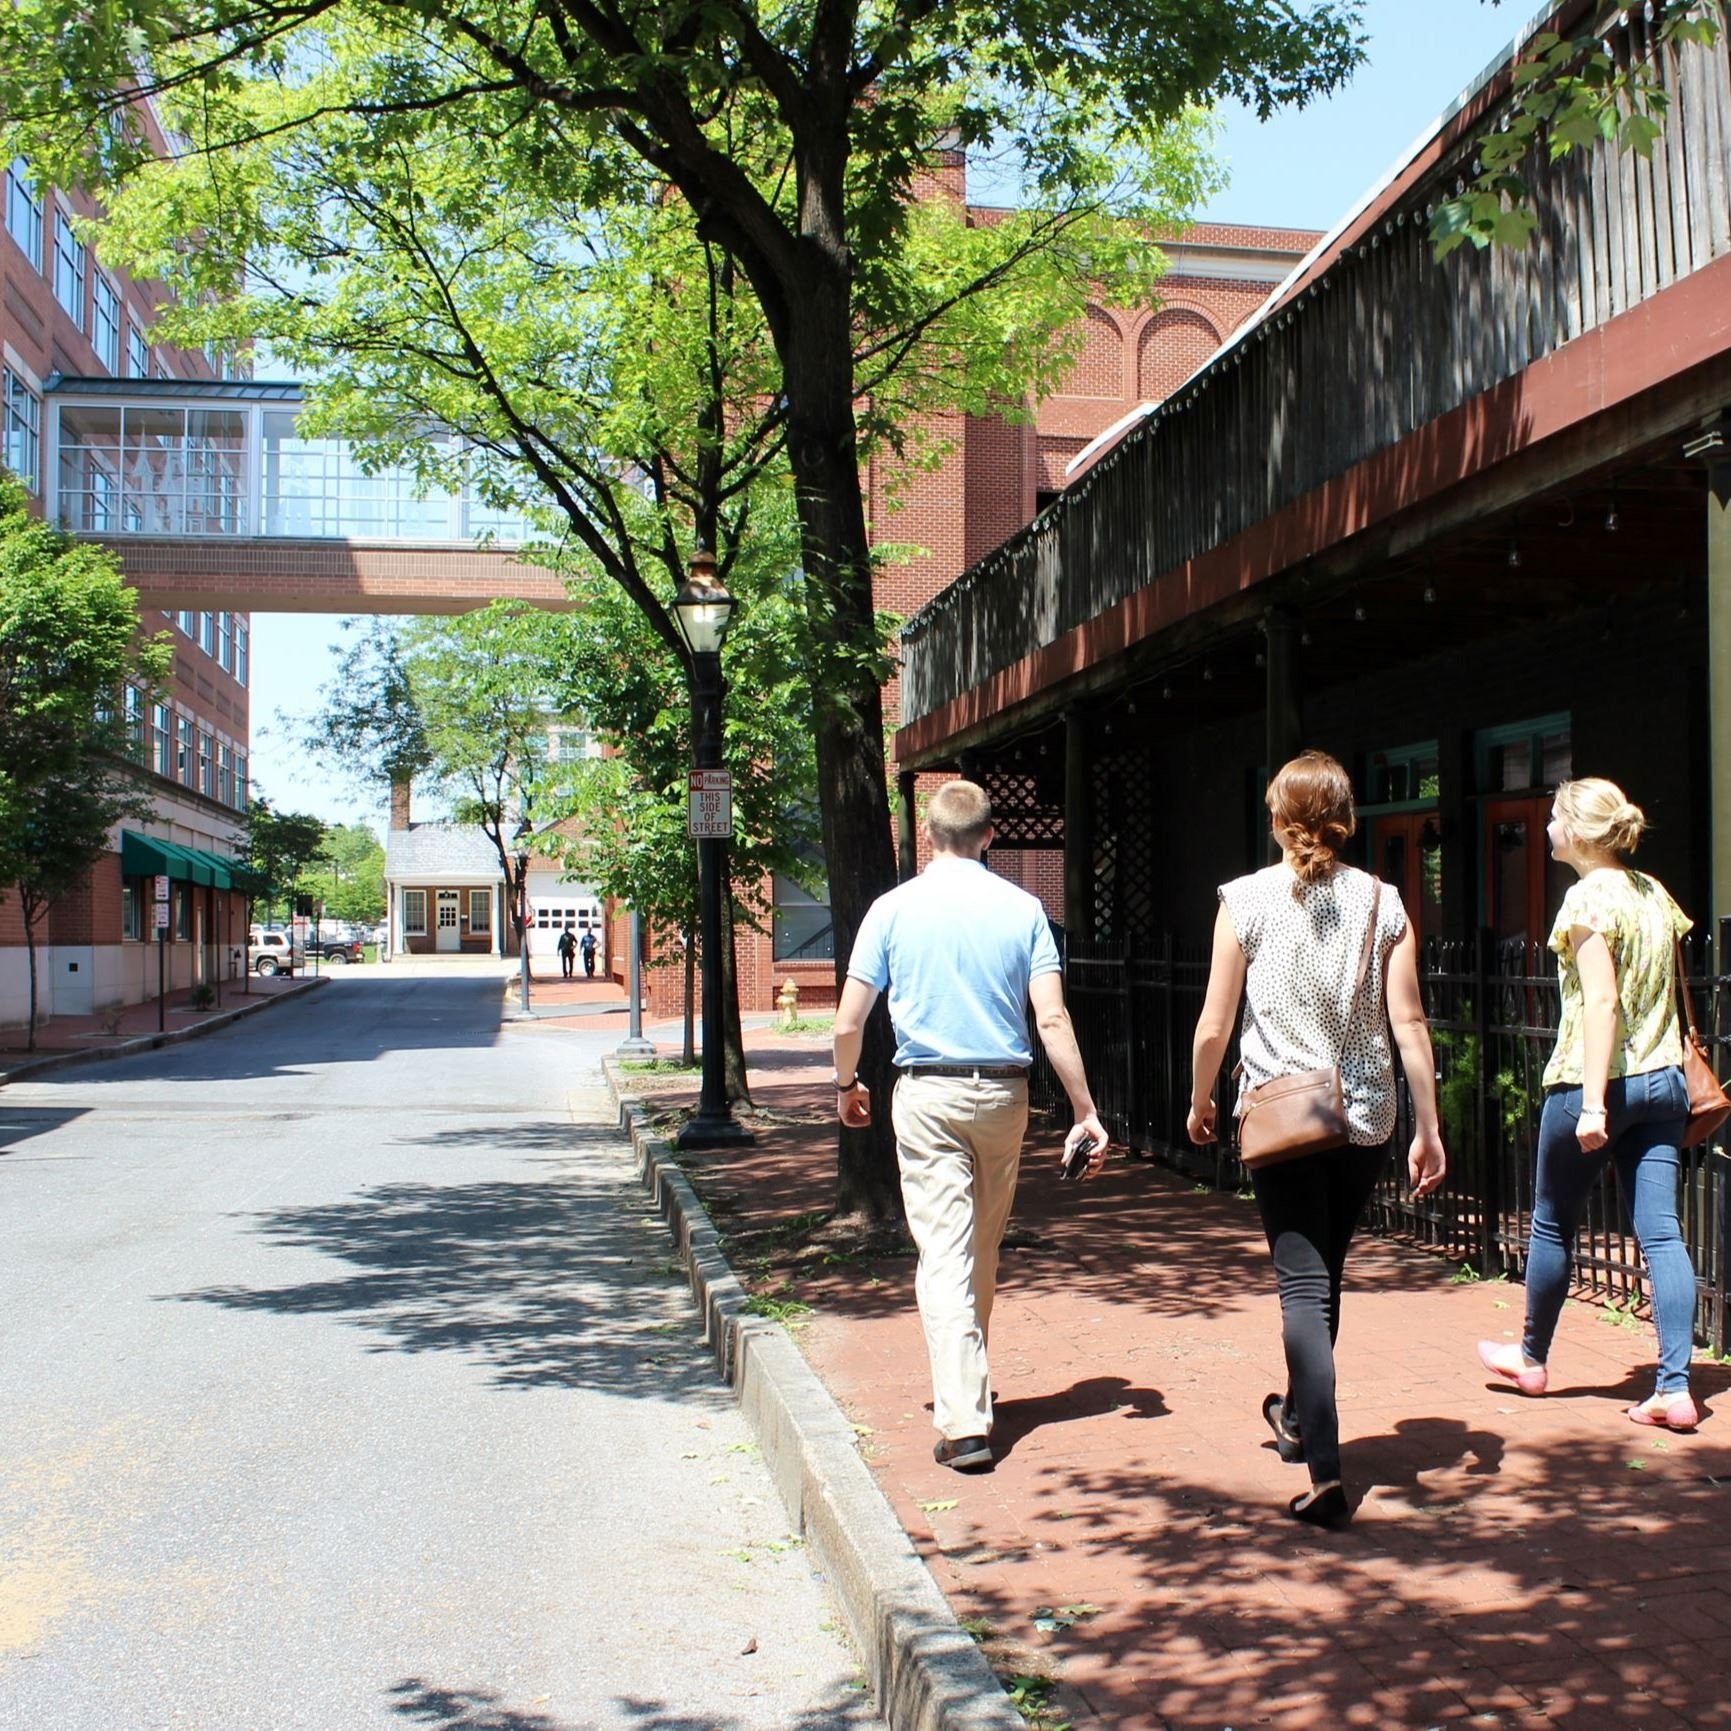 People walking down a street flanked by brick buildings